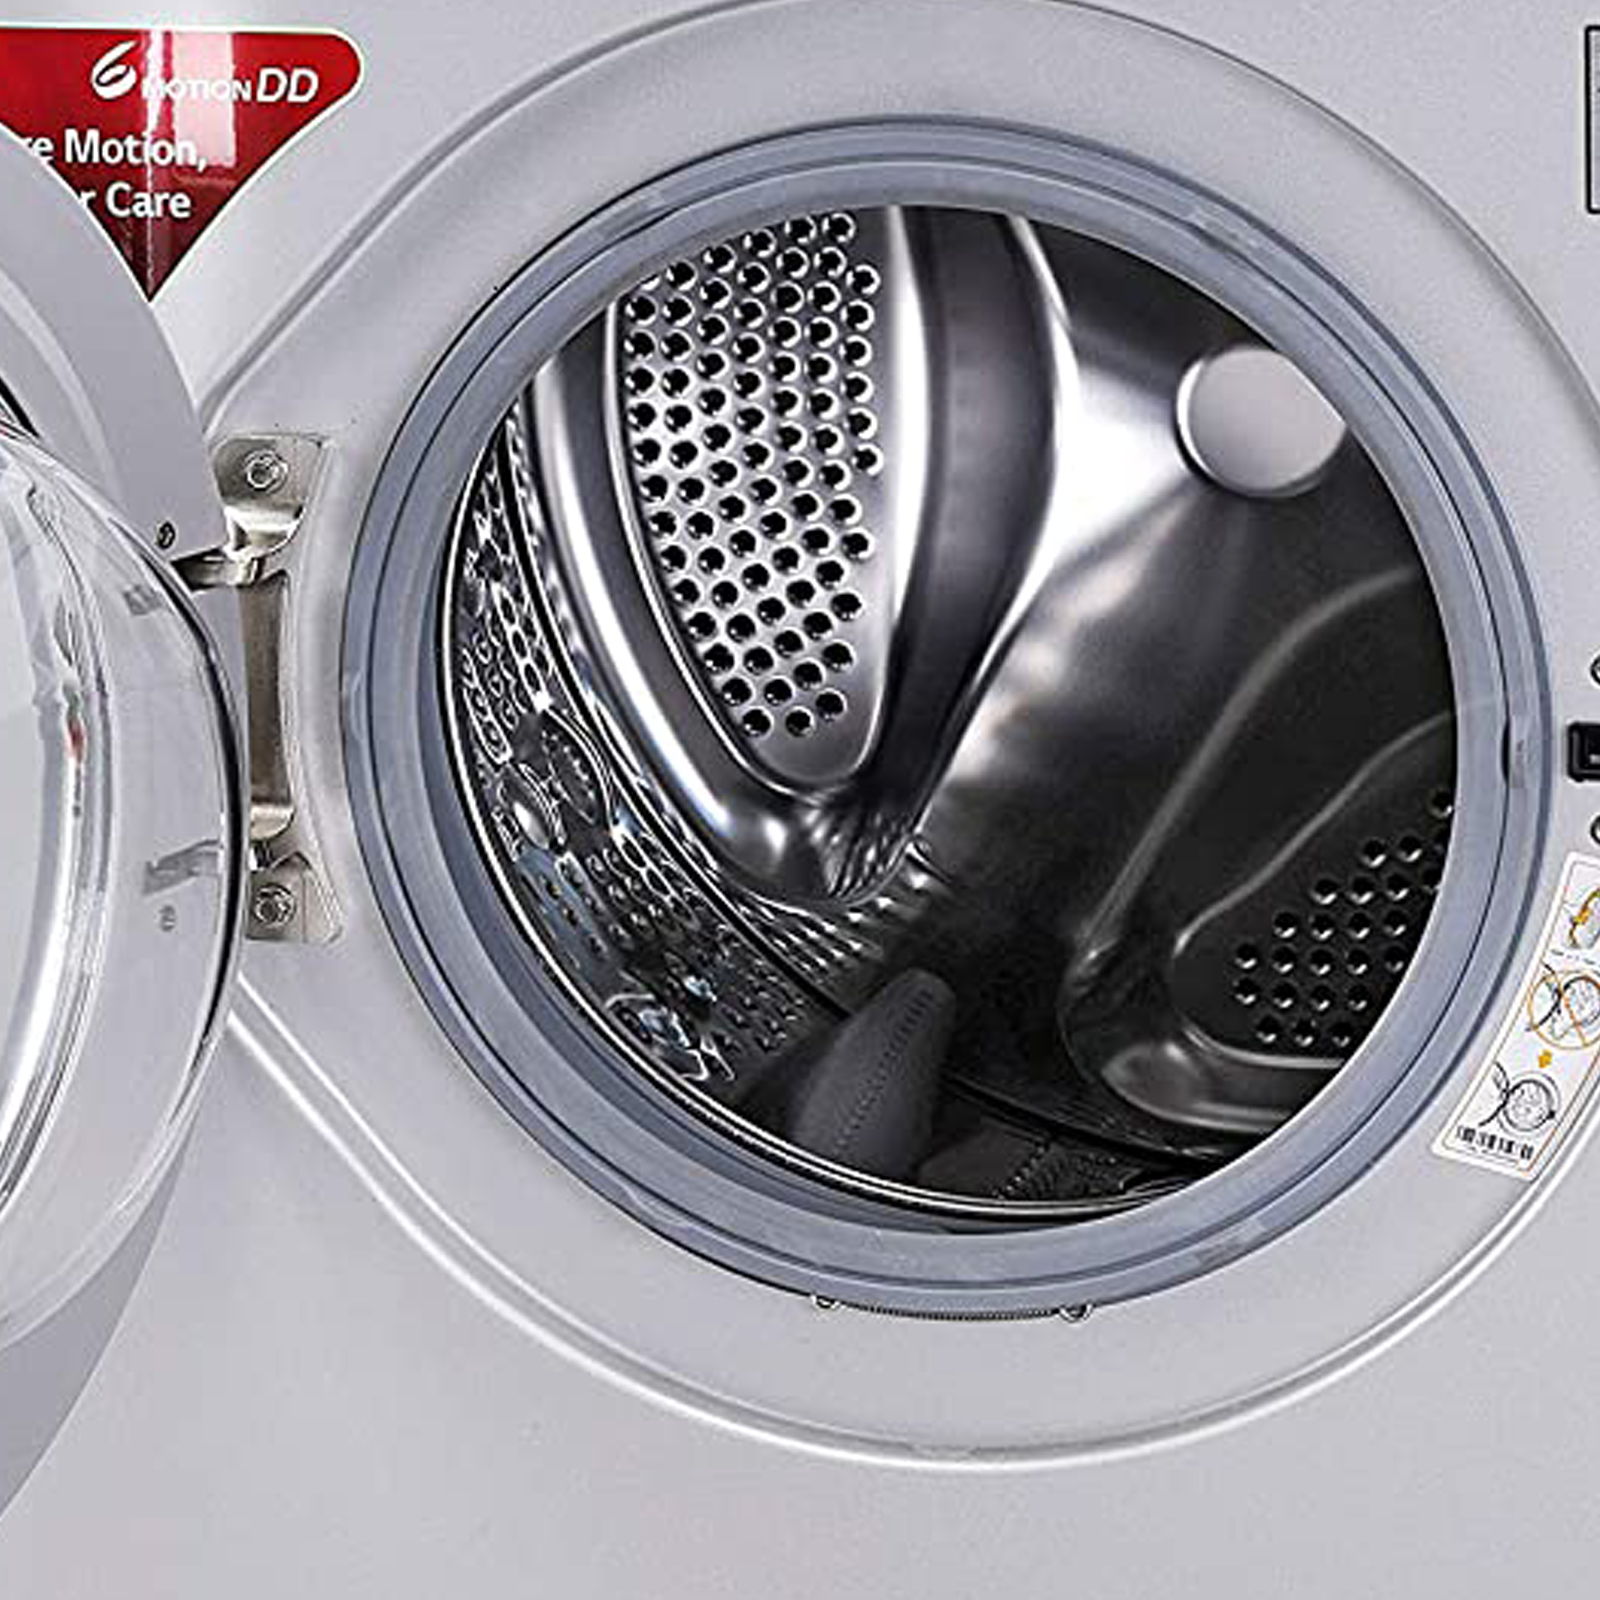 LG 7 kg 5 Star Fully Automatic Front Load Washing Machine (Smart Diagnosis, FHM1207ZDL.ALSQEIL, Luxury Silver) 4